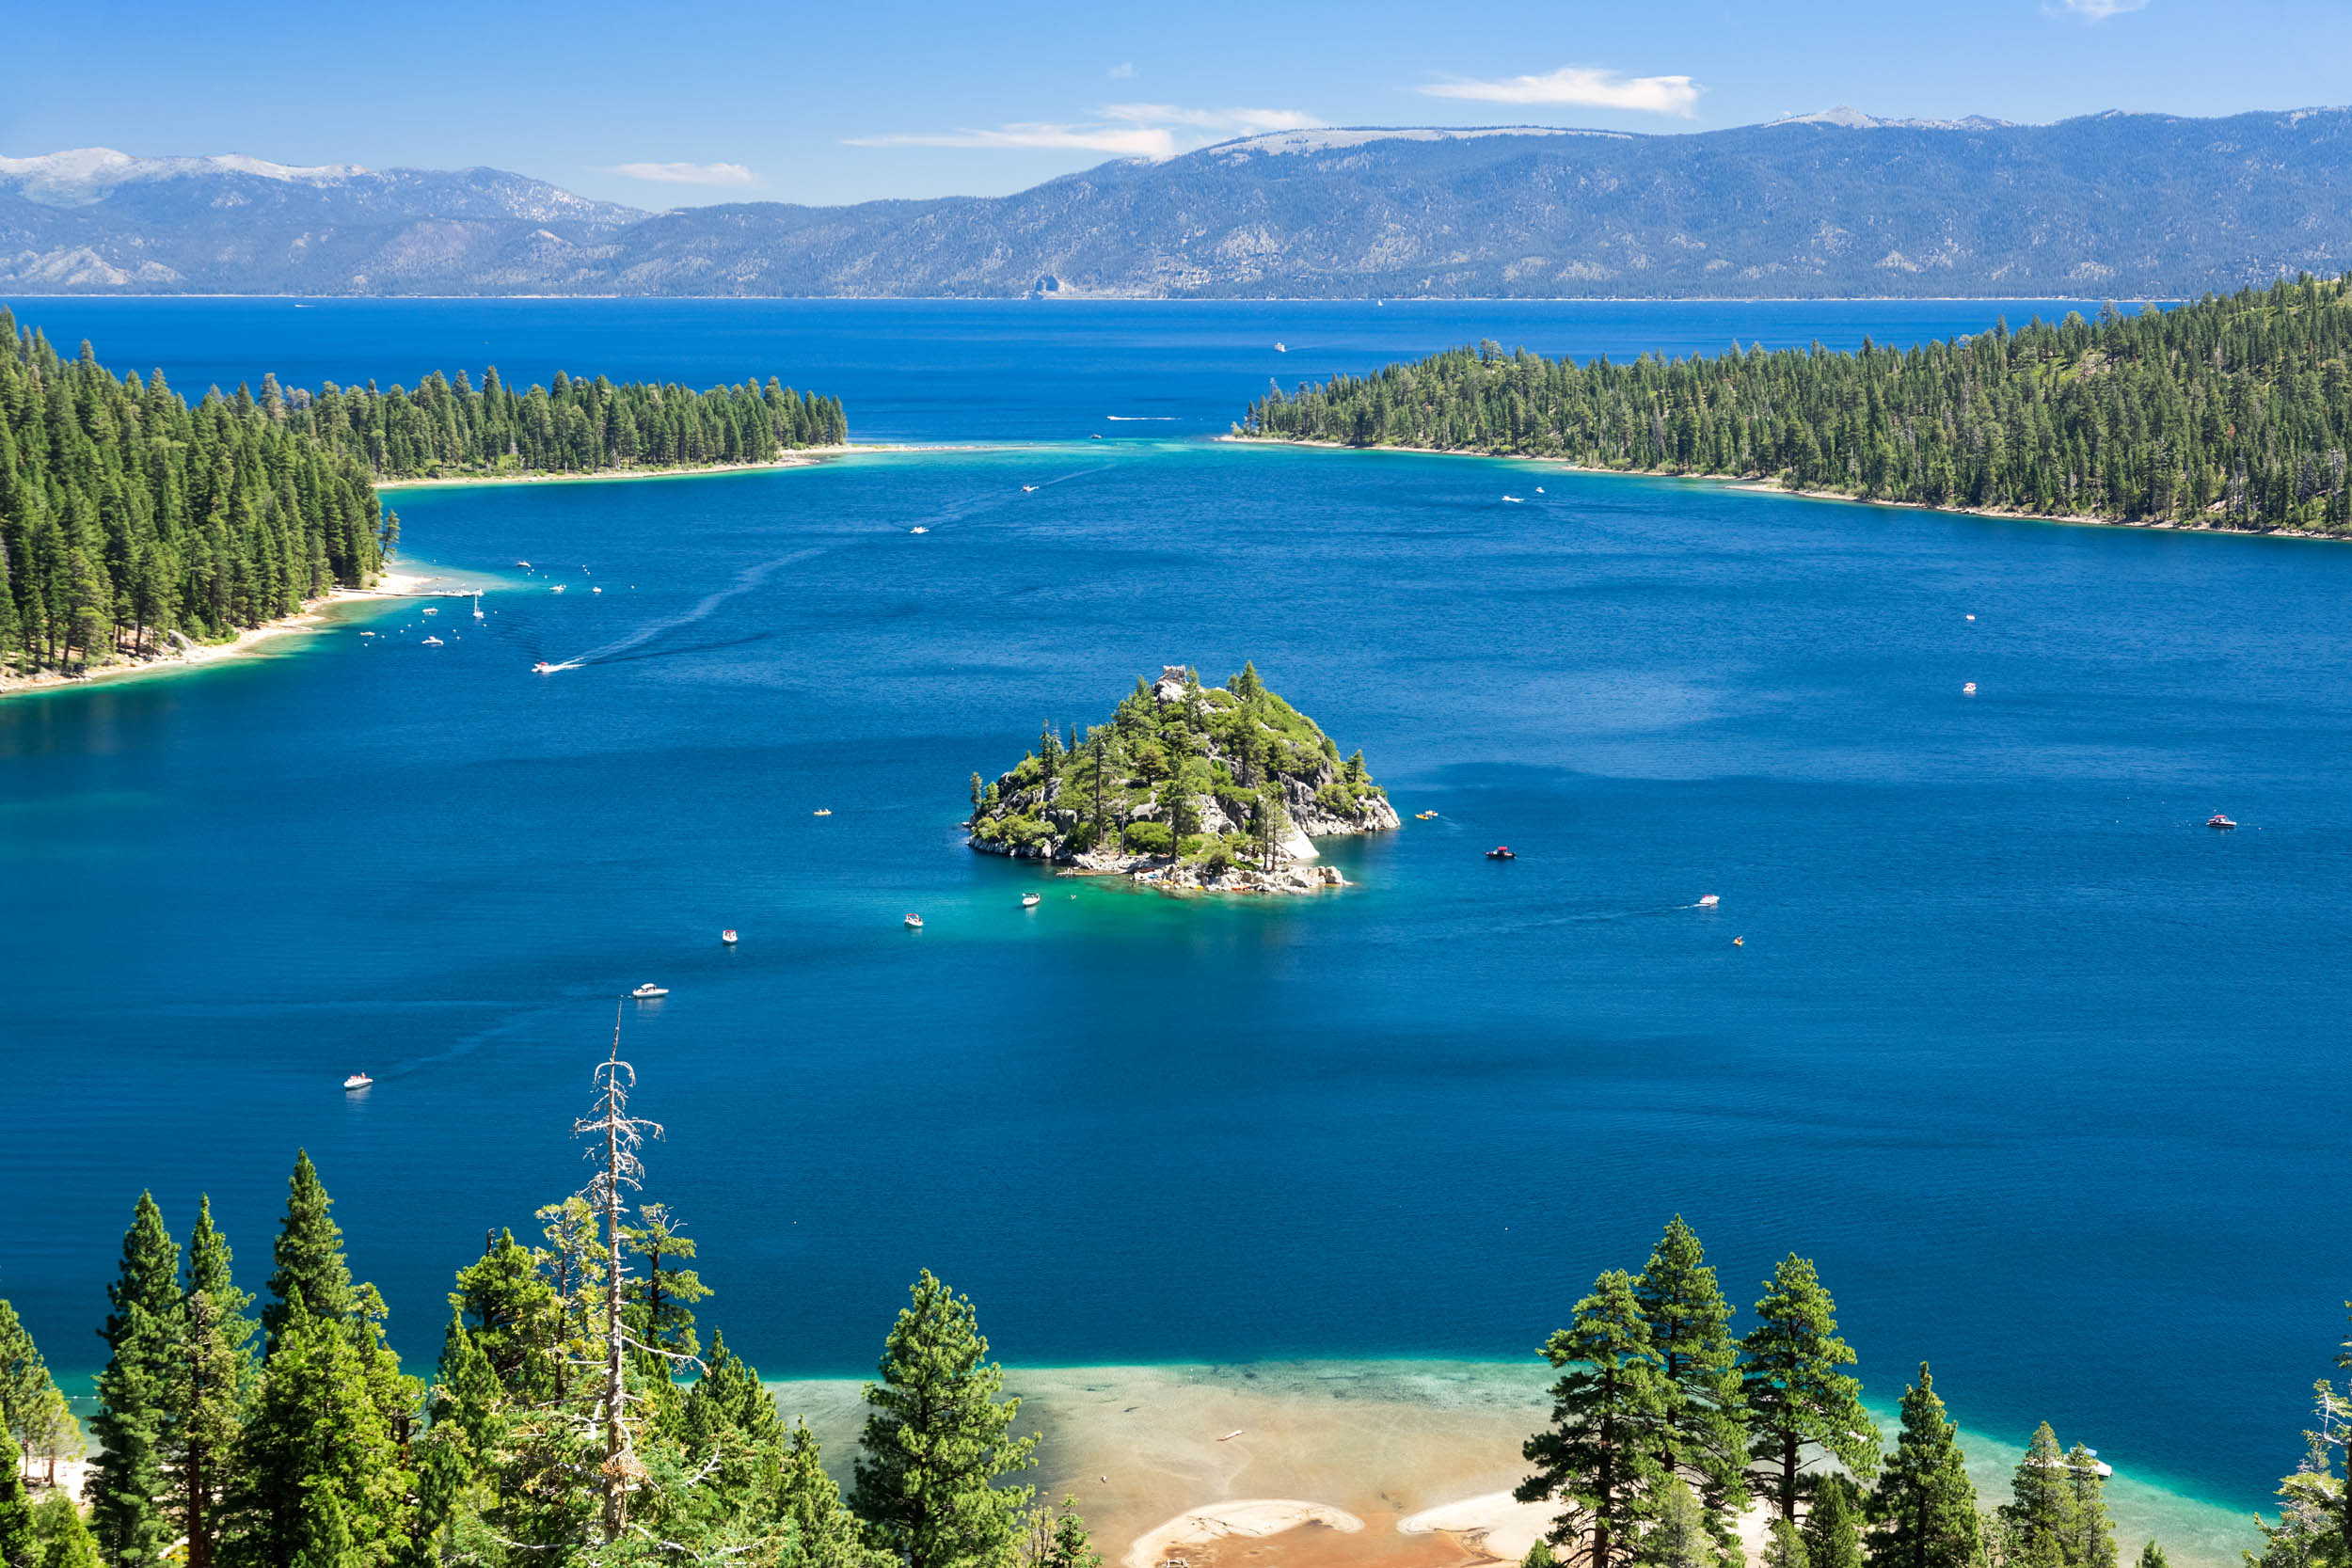 Lake Tahoe is warming 15 times faster than normal rate